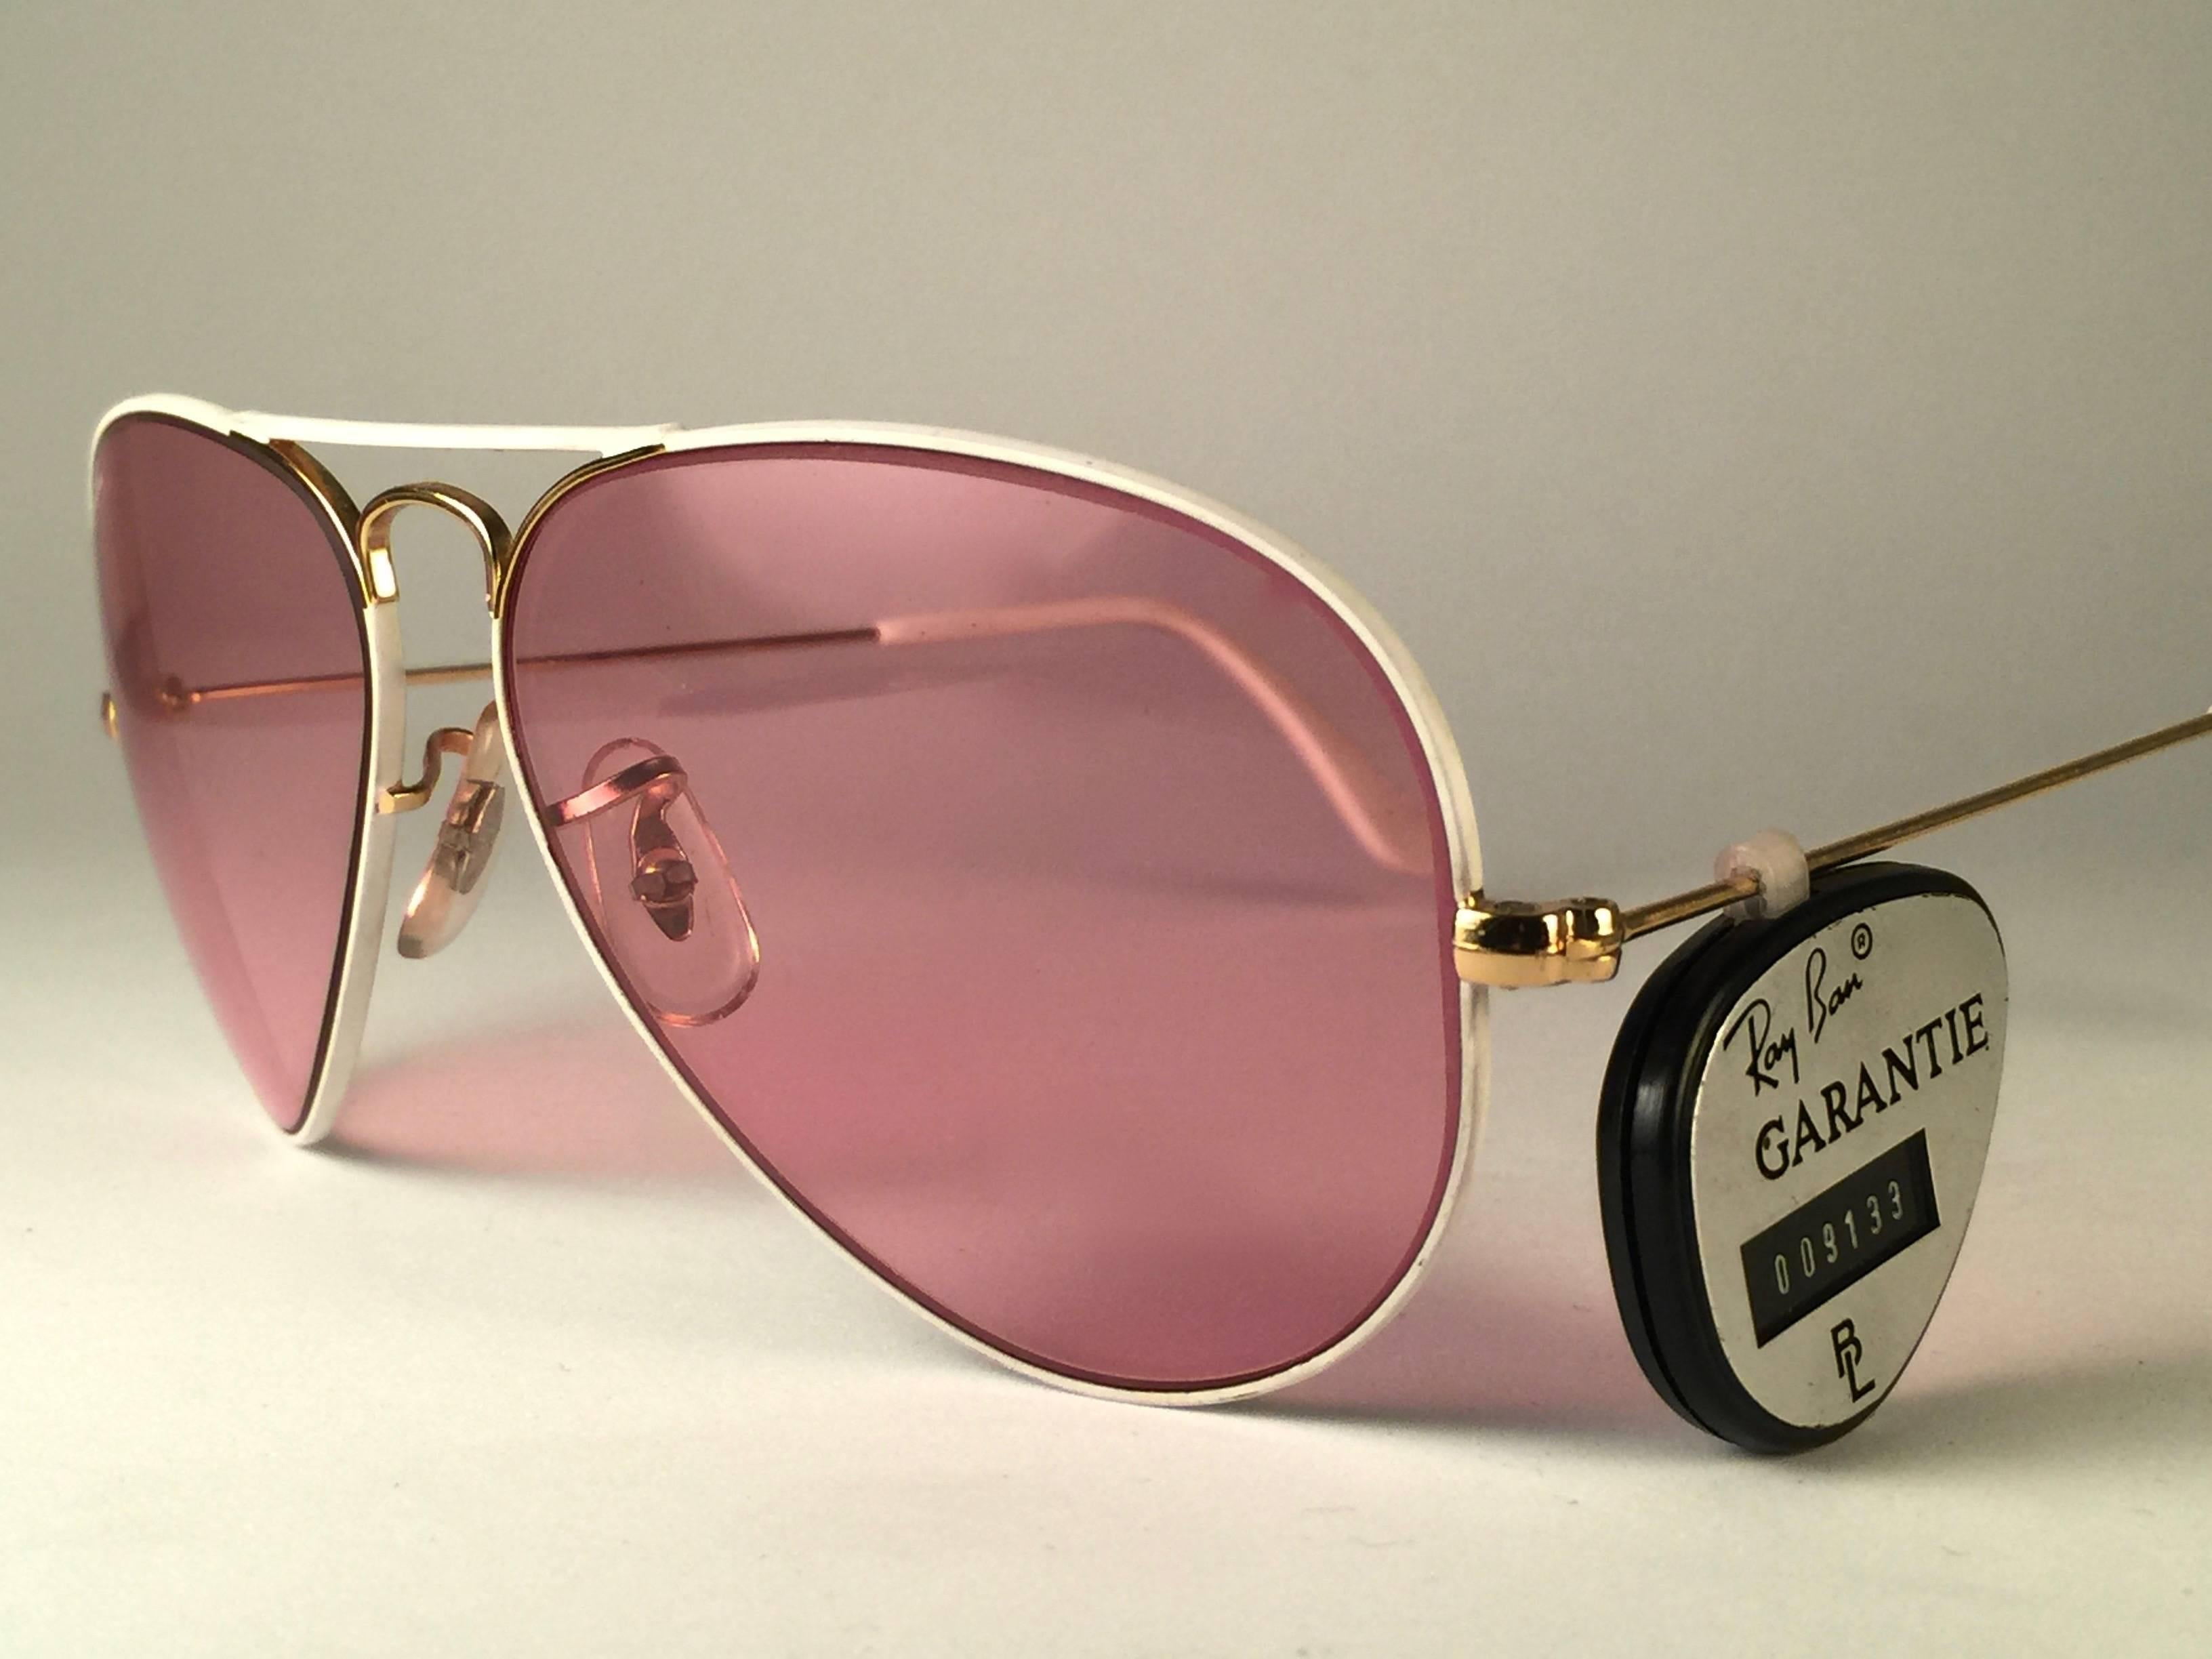 cfcb65a2ca7 New Vintage Ray Ban Aviator Flying Colors White Rose Lenses B L Sunglasses  at 1stdibs